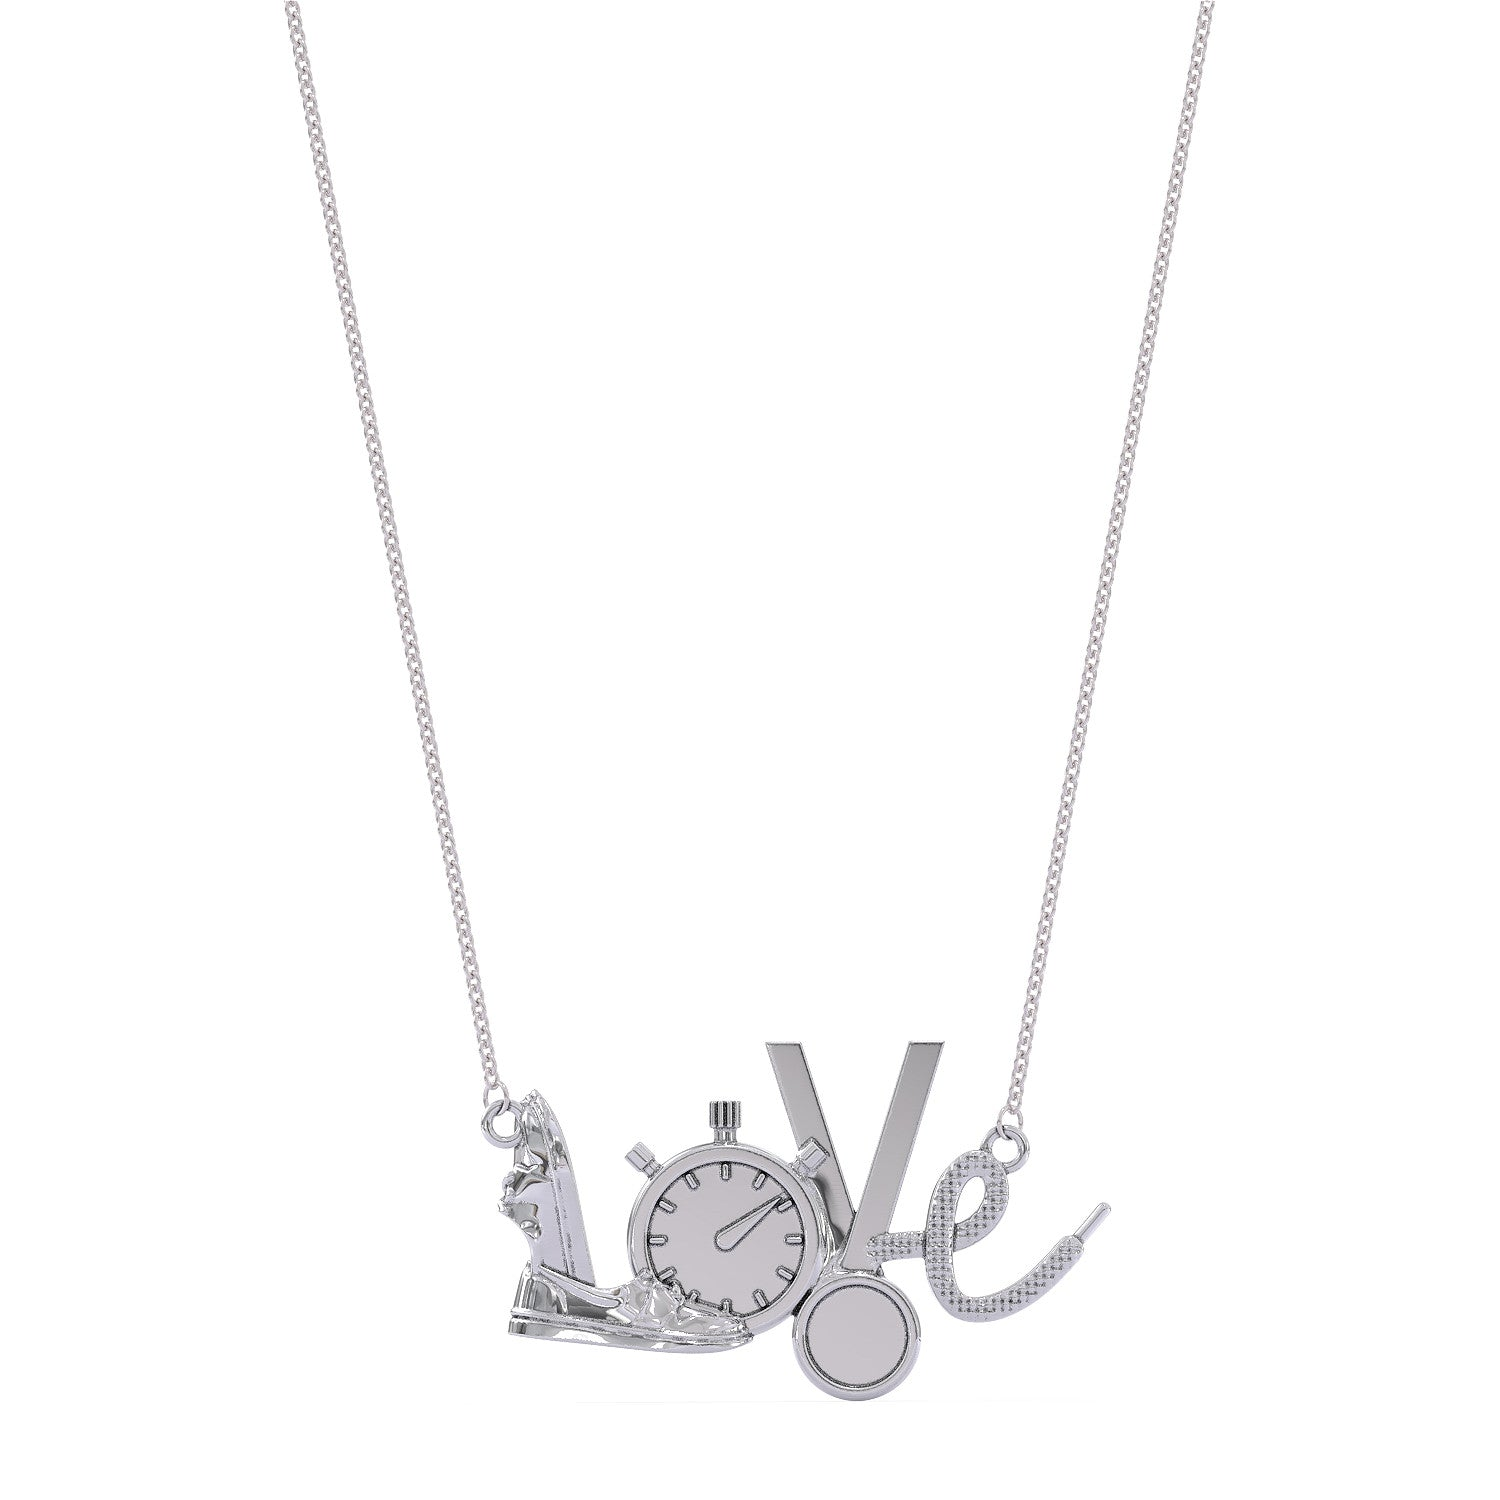 Running Love Necklace